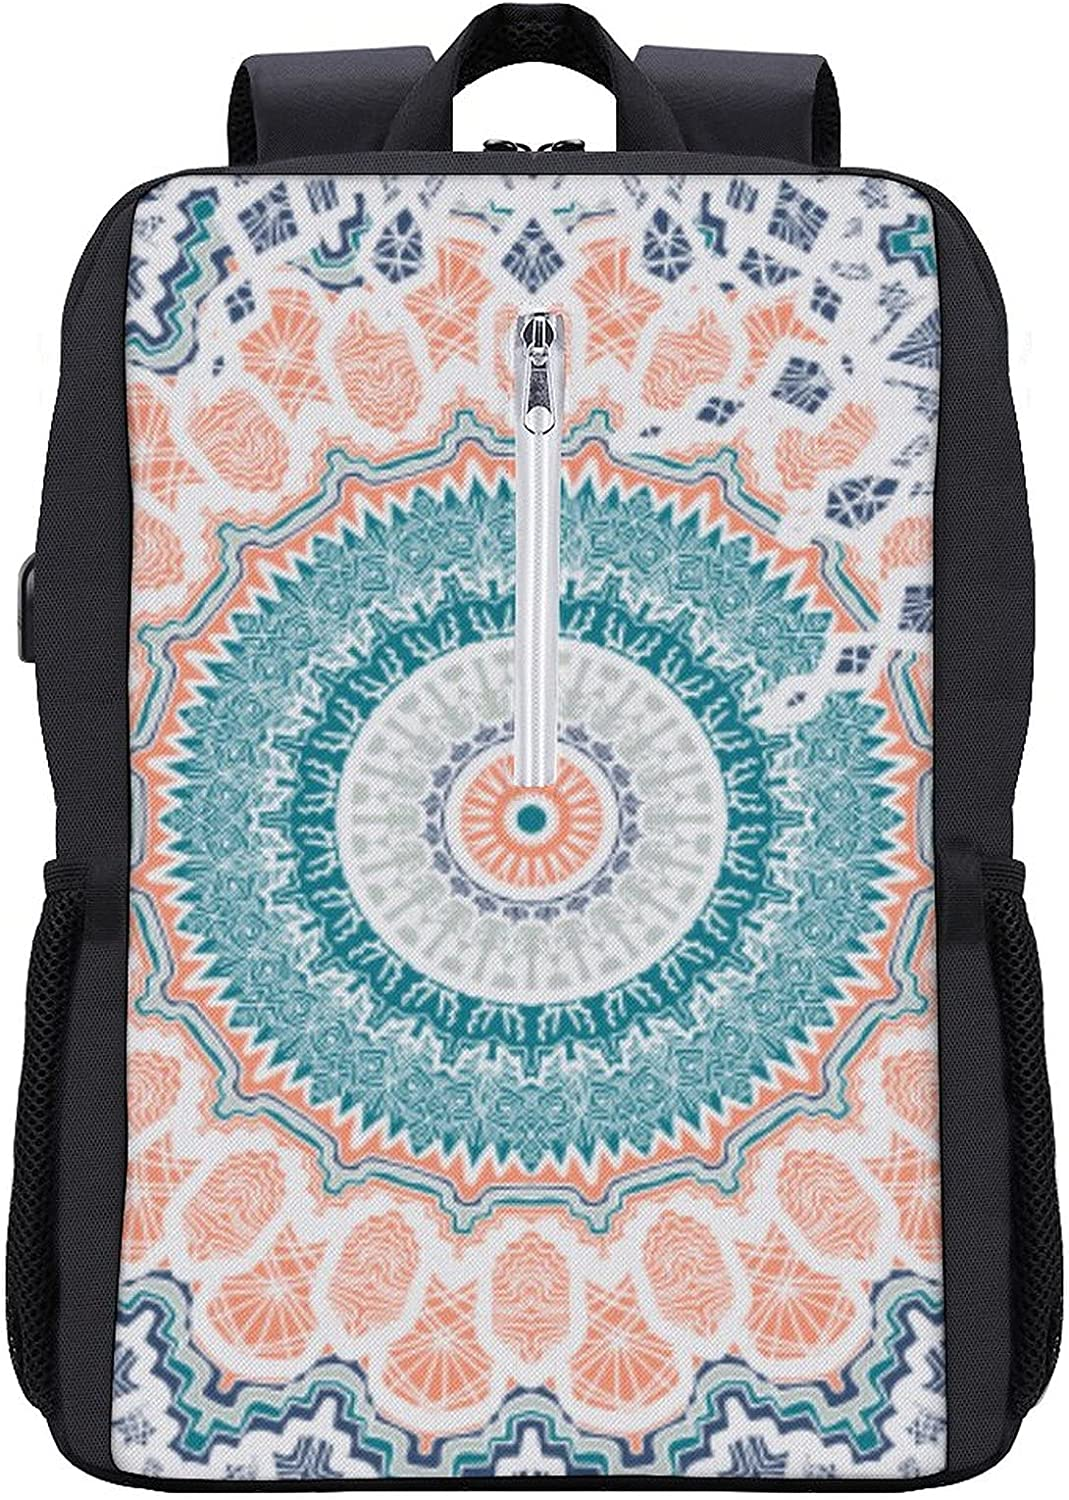 Mandala Laptop Backpack with USB Backp Port Travelling Super sale 67% OFF of fixed price Charging